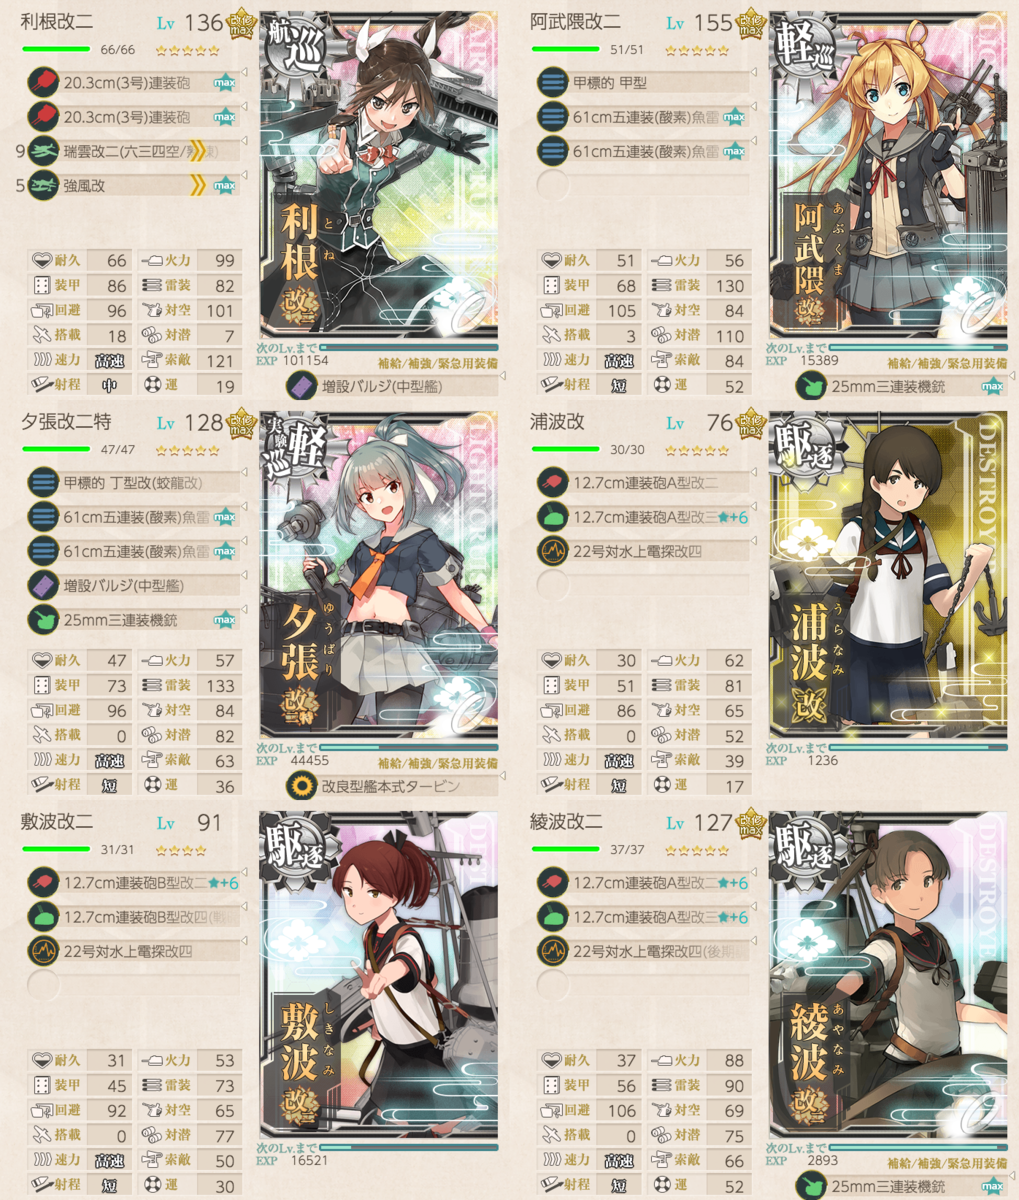 f:id:nameless_admiral:20200208021535p:plain